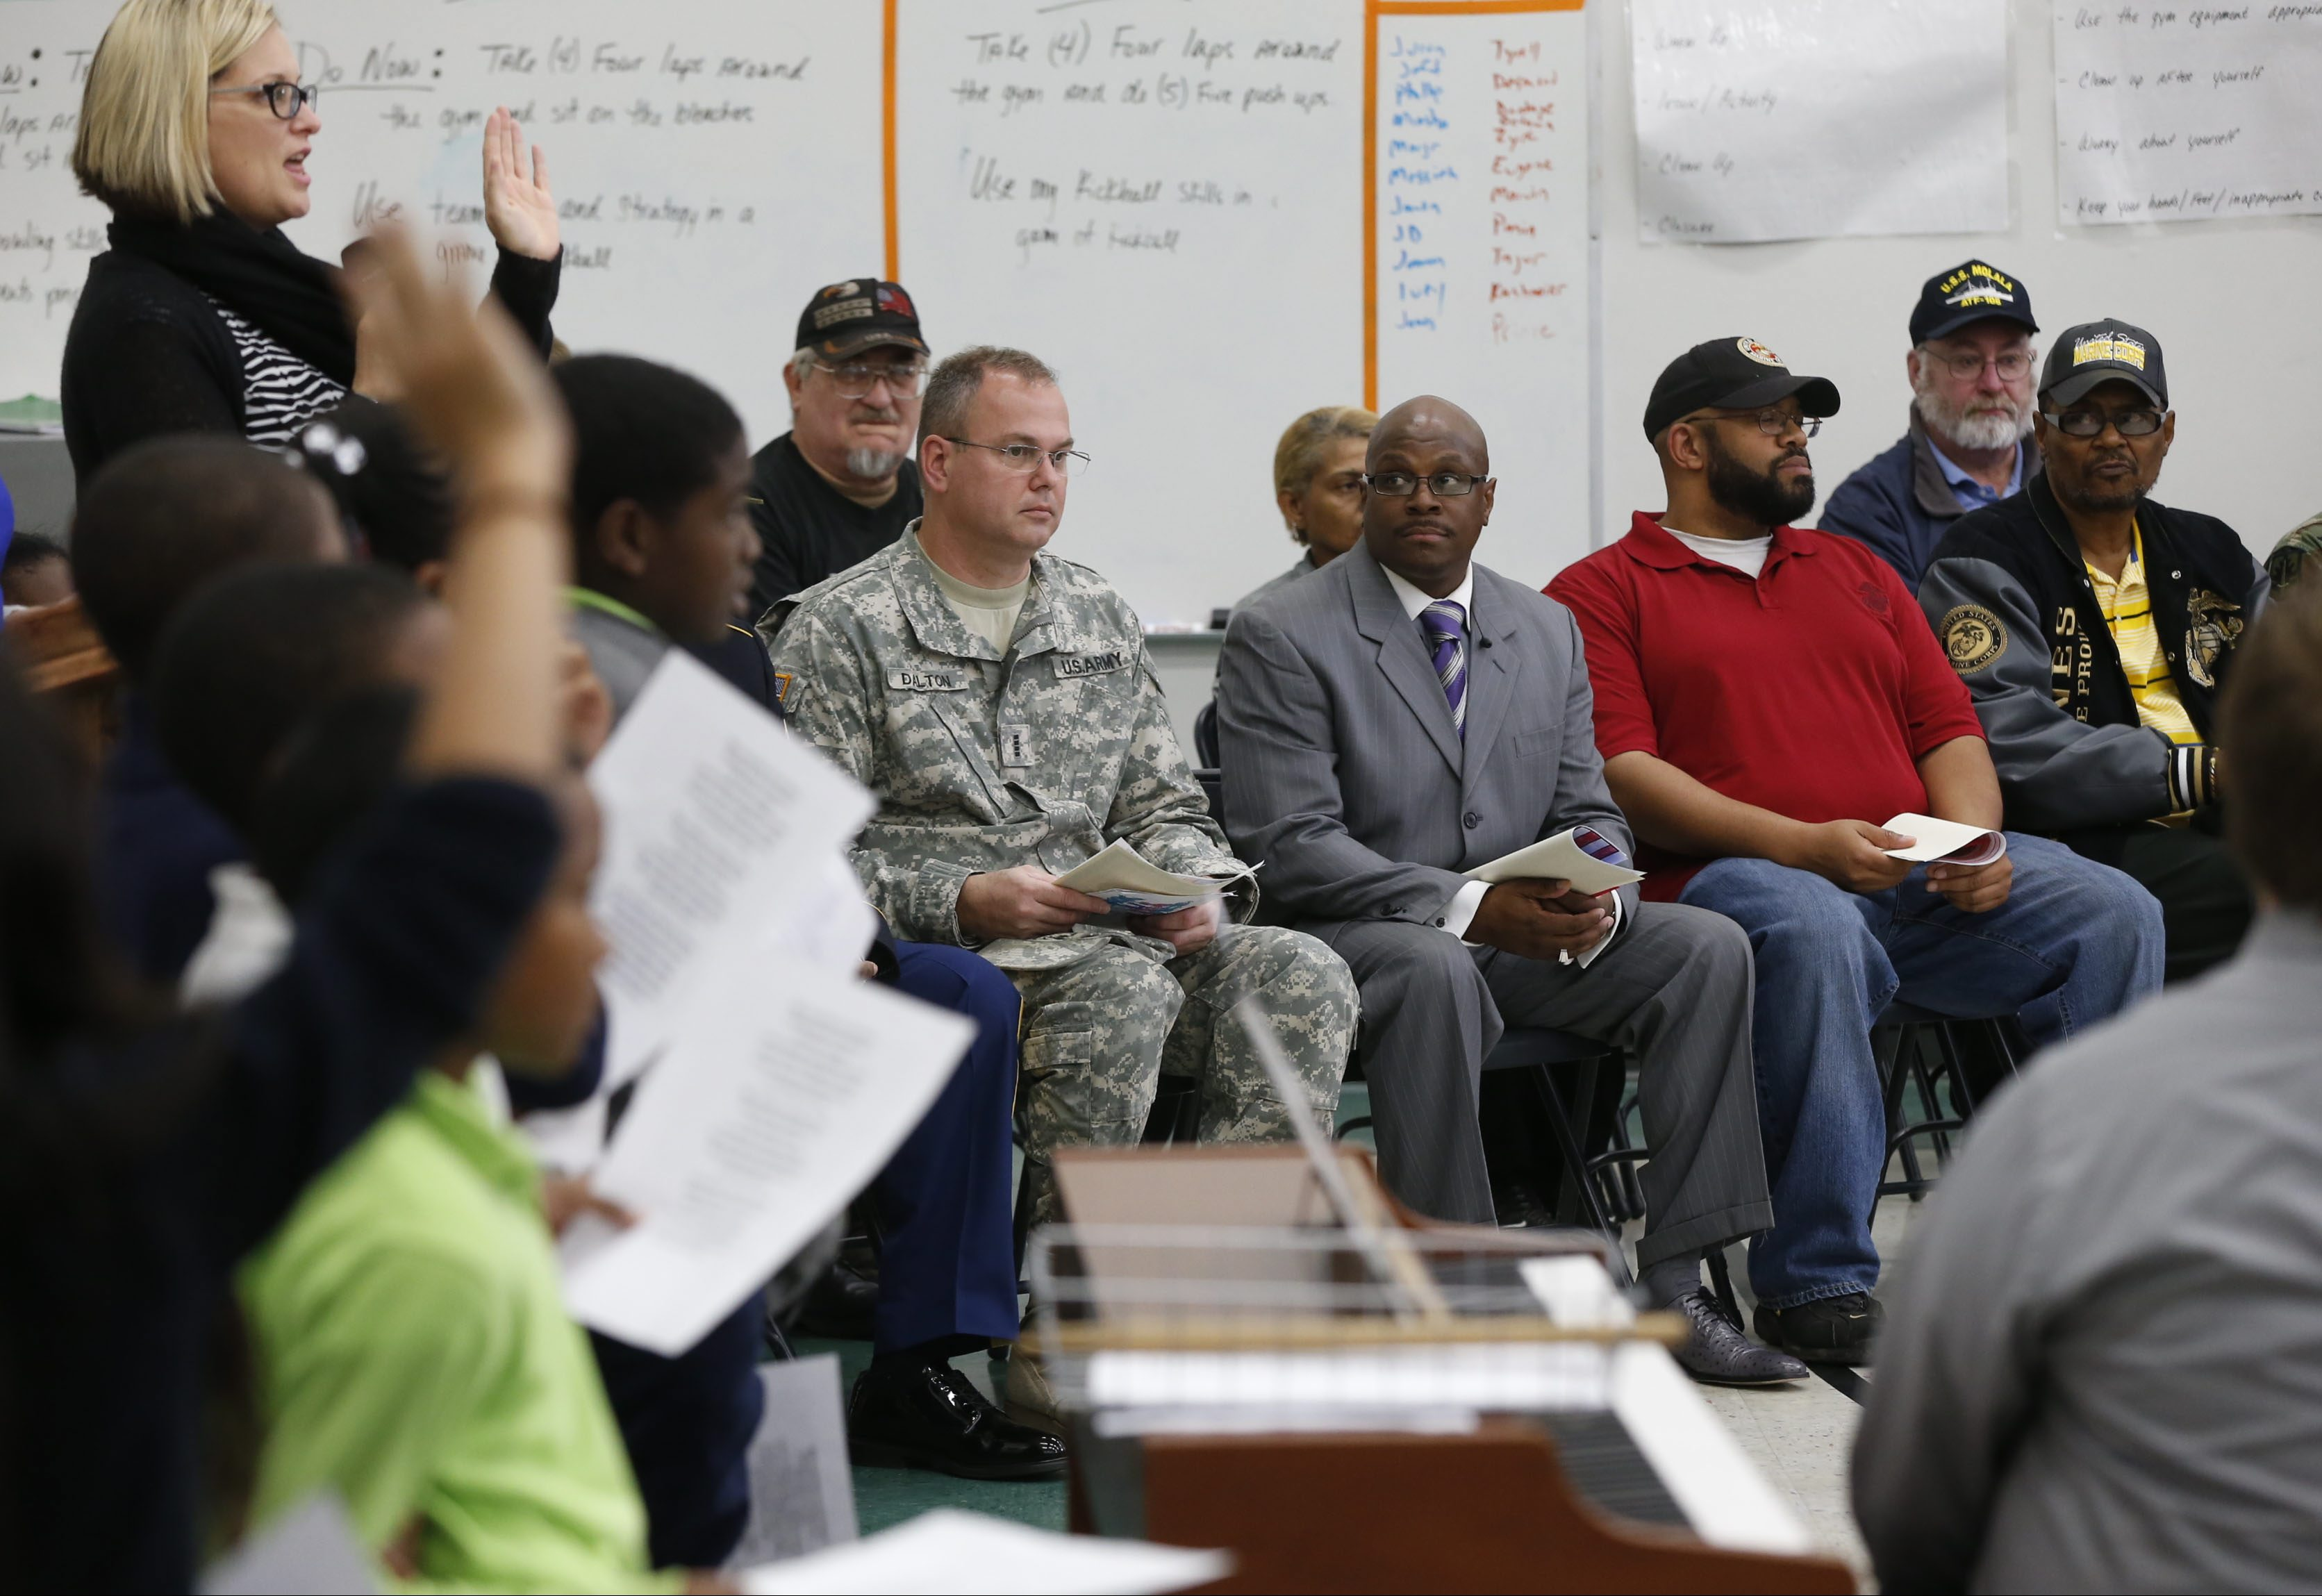 Veterans sit in the front row that were honored.  From left, Scott Dalton, Army, Howard Patton III, Army, Shawn Dukes, Marines, Waverly Jones, Marines on Monday, Nov. 10, 2014.  Buffalo United Charter hosted a 'bring a vet to school' event.  Vets visited  classrooms and then were honored at a school assembly at 1:30 and refreshments.   (Robert Kirkham/Buffalo News)